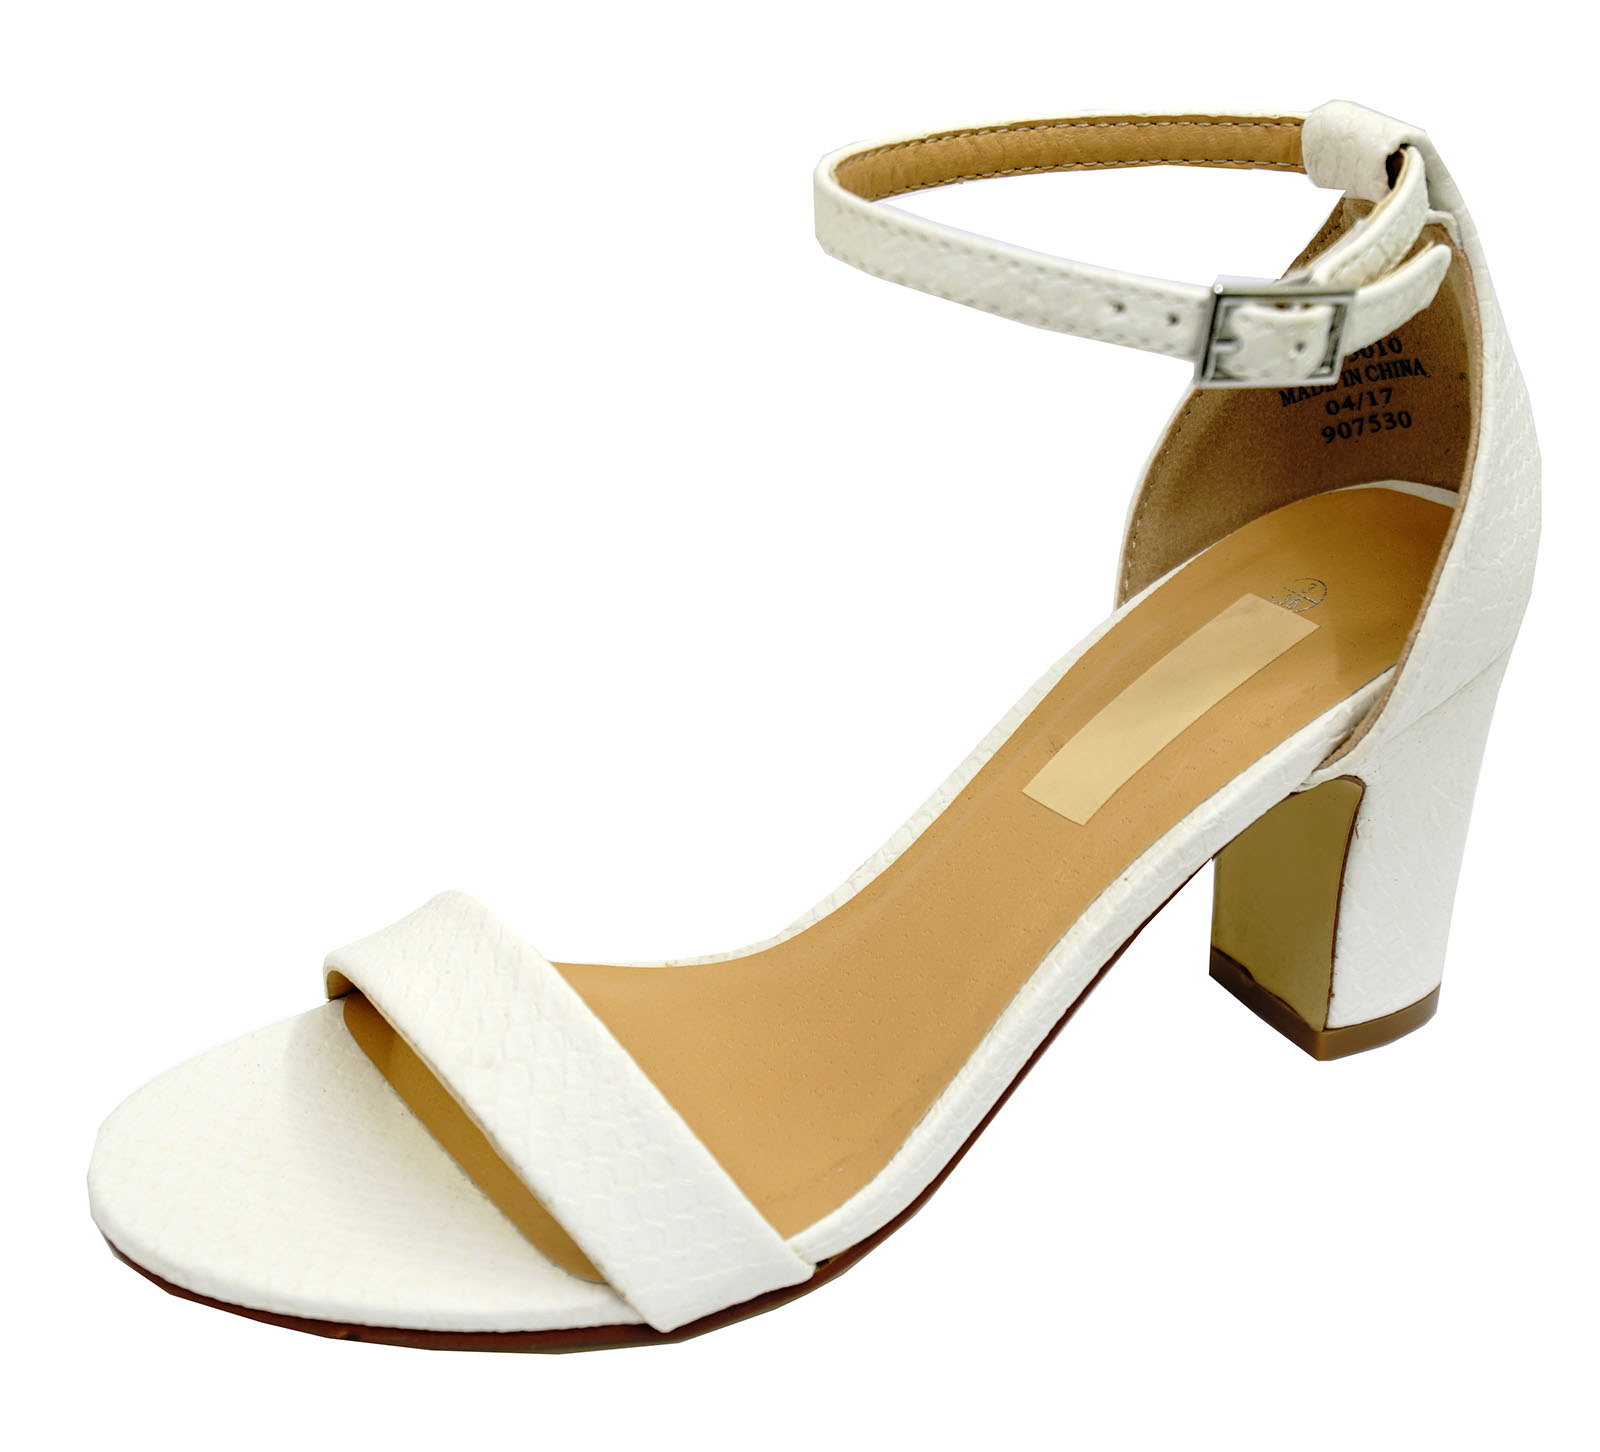 LADIES-WHITE-ANKLE-STRAP-BLOCK-HEEL-PEEPTOE-SANDALS-HOLIDAY-COMFY-SHOES-UK-3-8 thumbnail 6